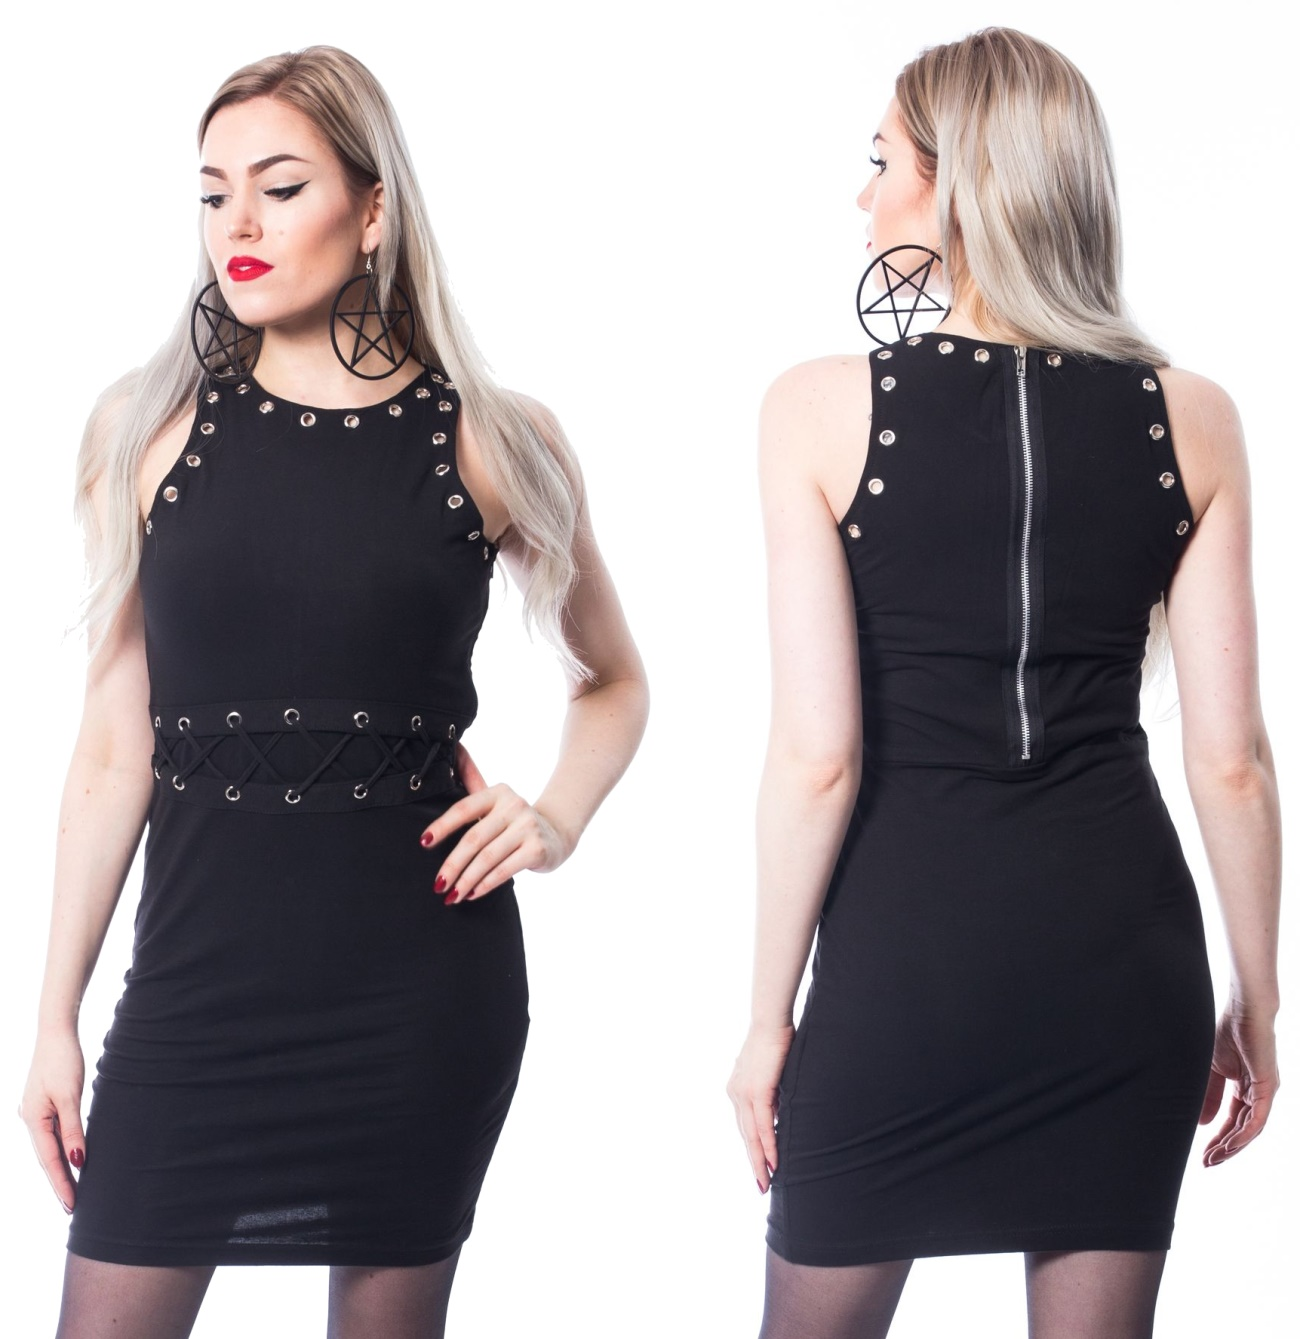 b6859a96d229 Figurbetontes Kleid Chemical Black - Chemical Black bei Gothic Onlineshop -  www.the-clash.de